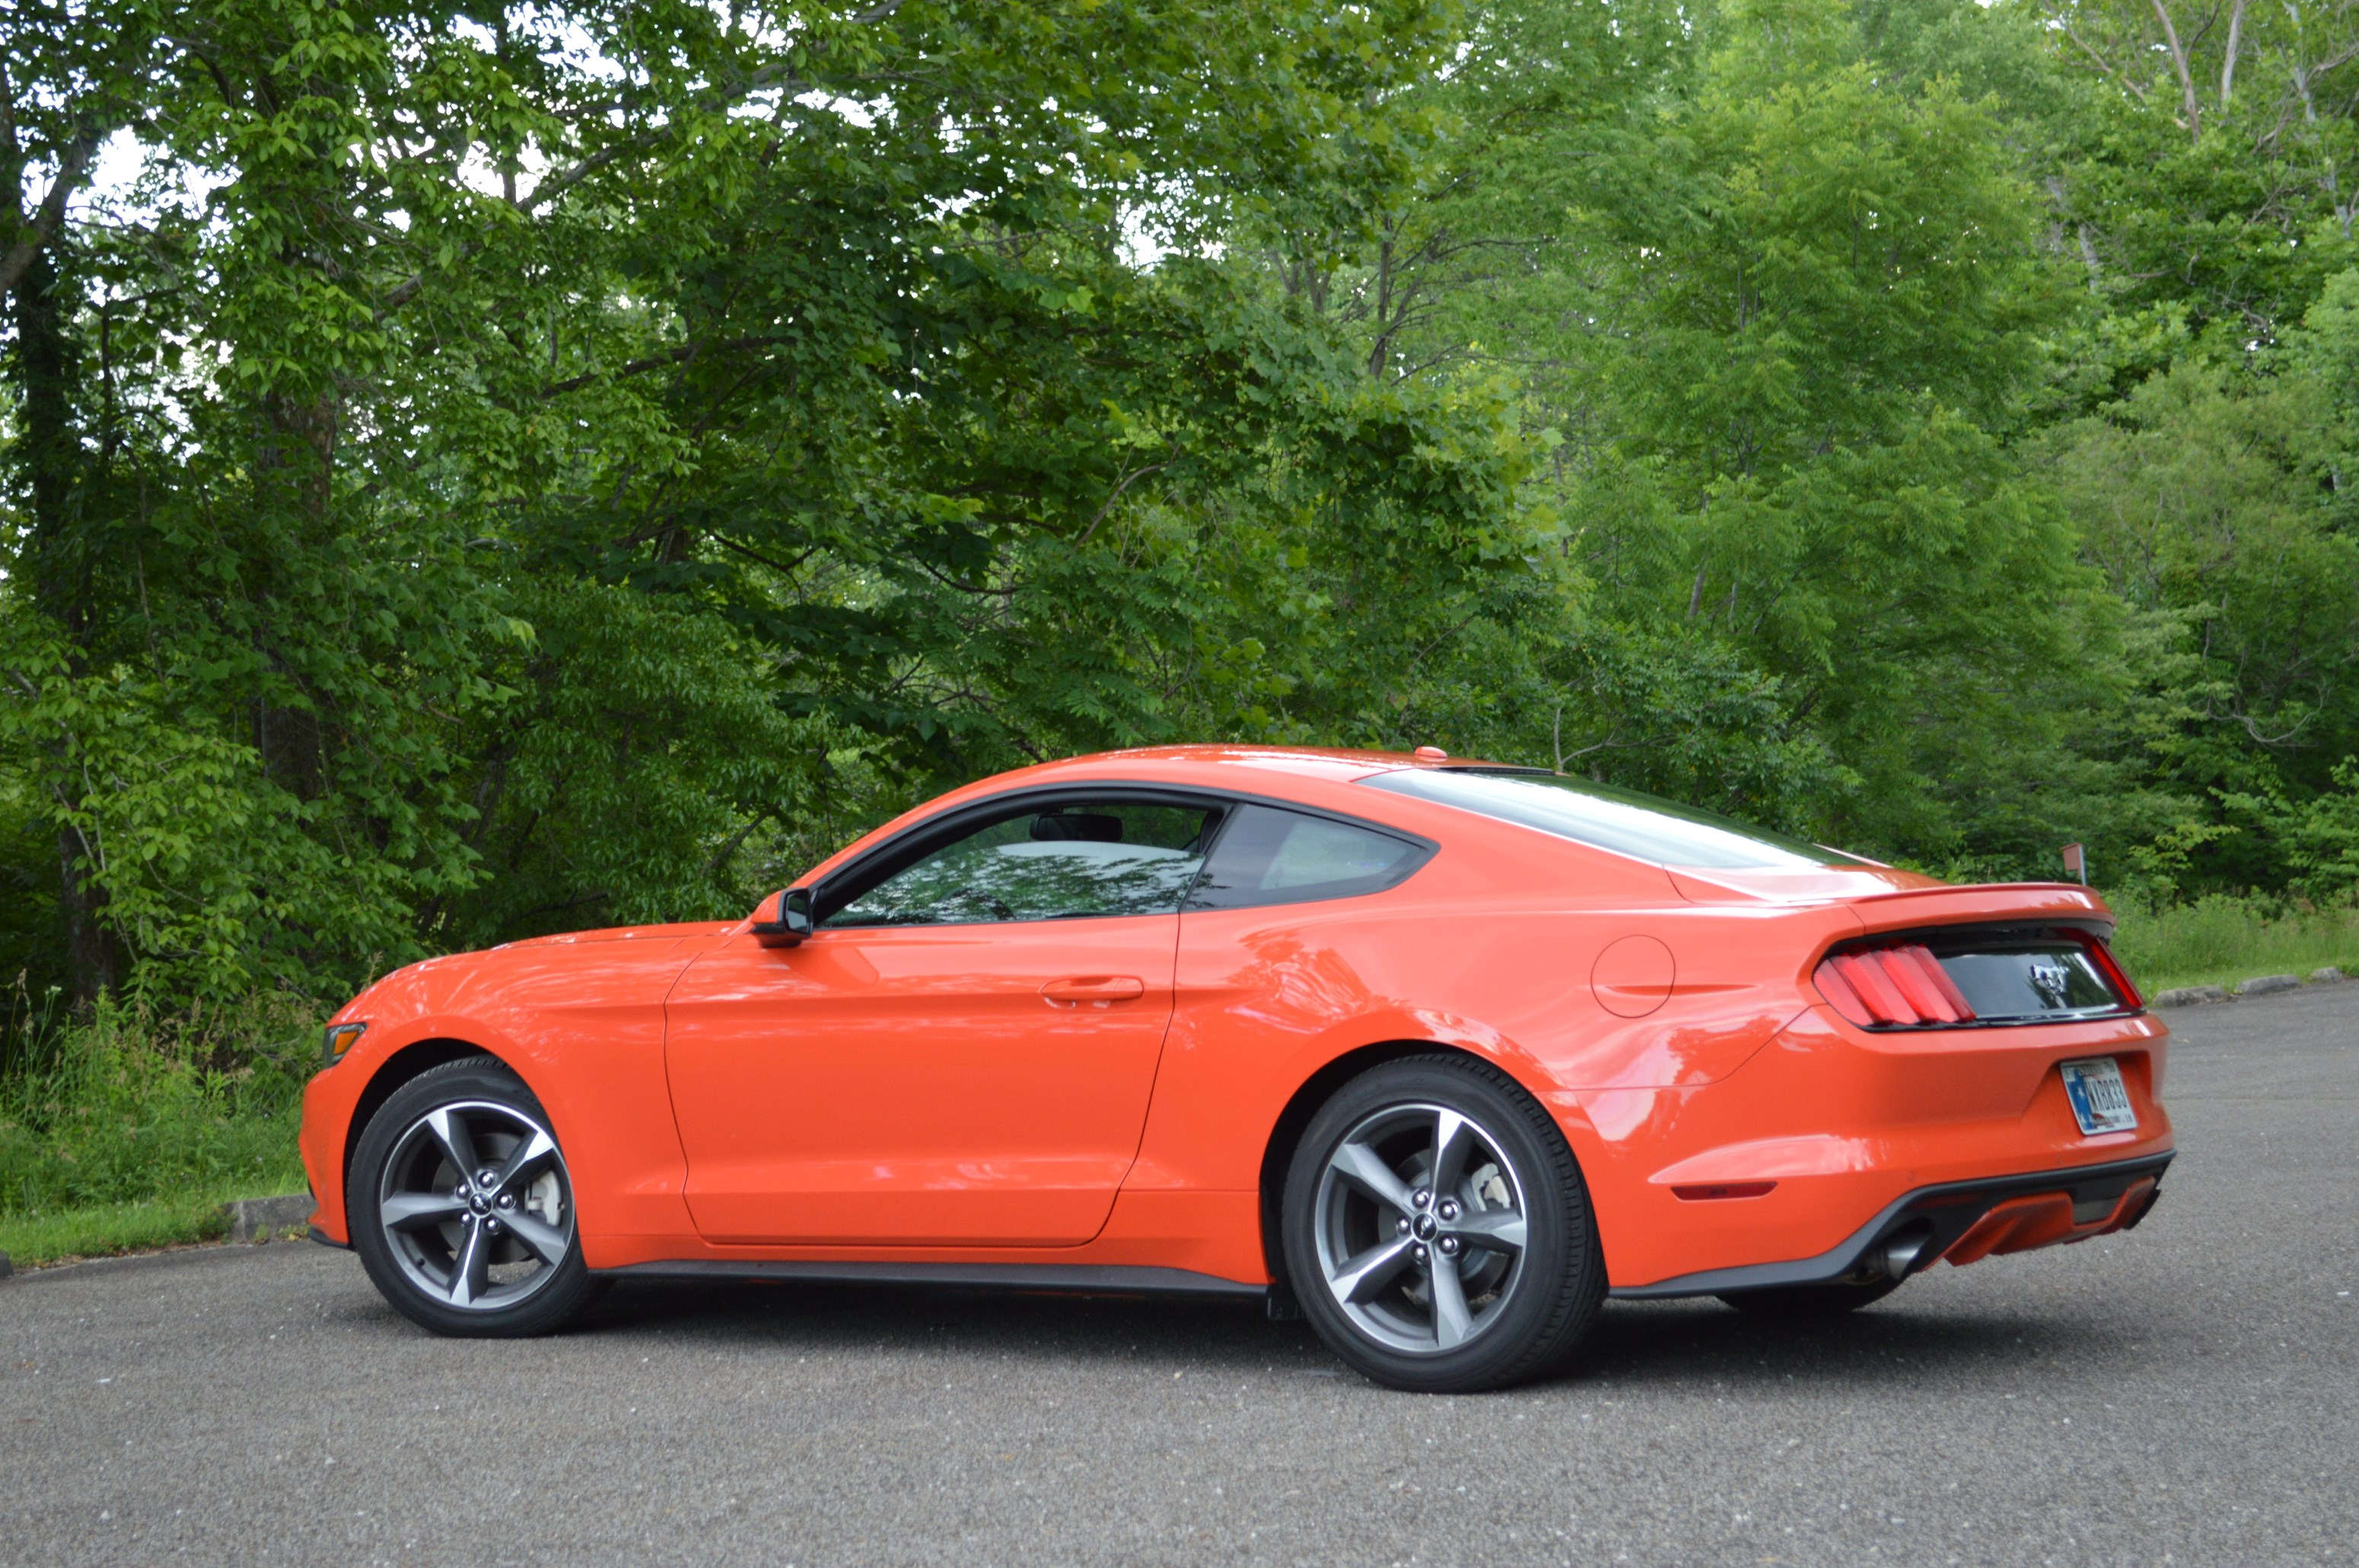 2015 Ford Mustang Ecoboost Premium -Orange Color/ Used Ford Mustang ...